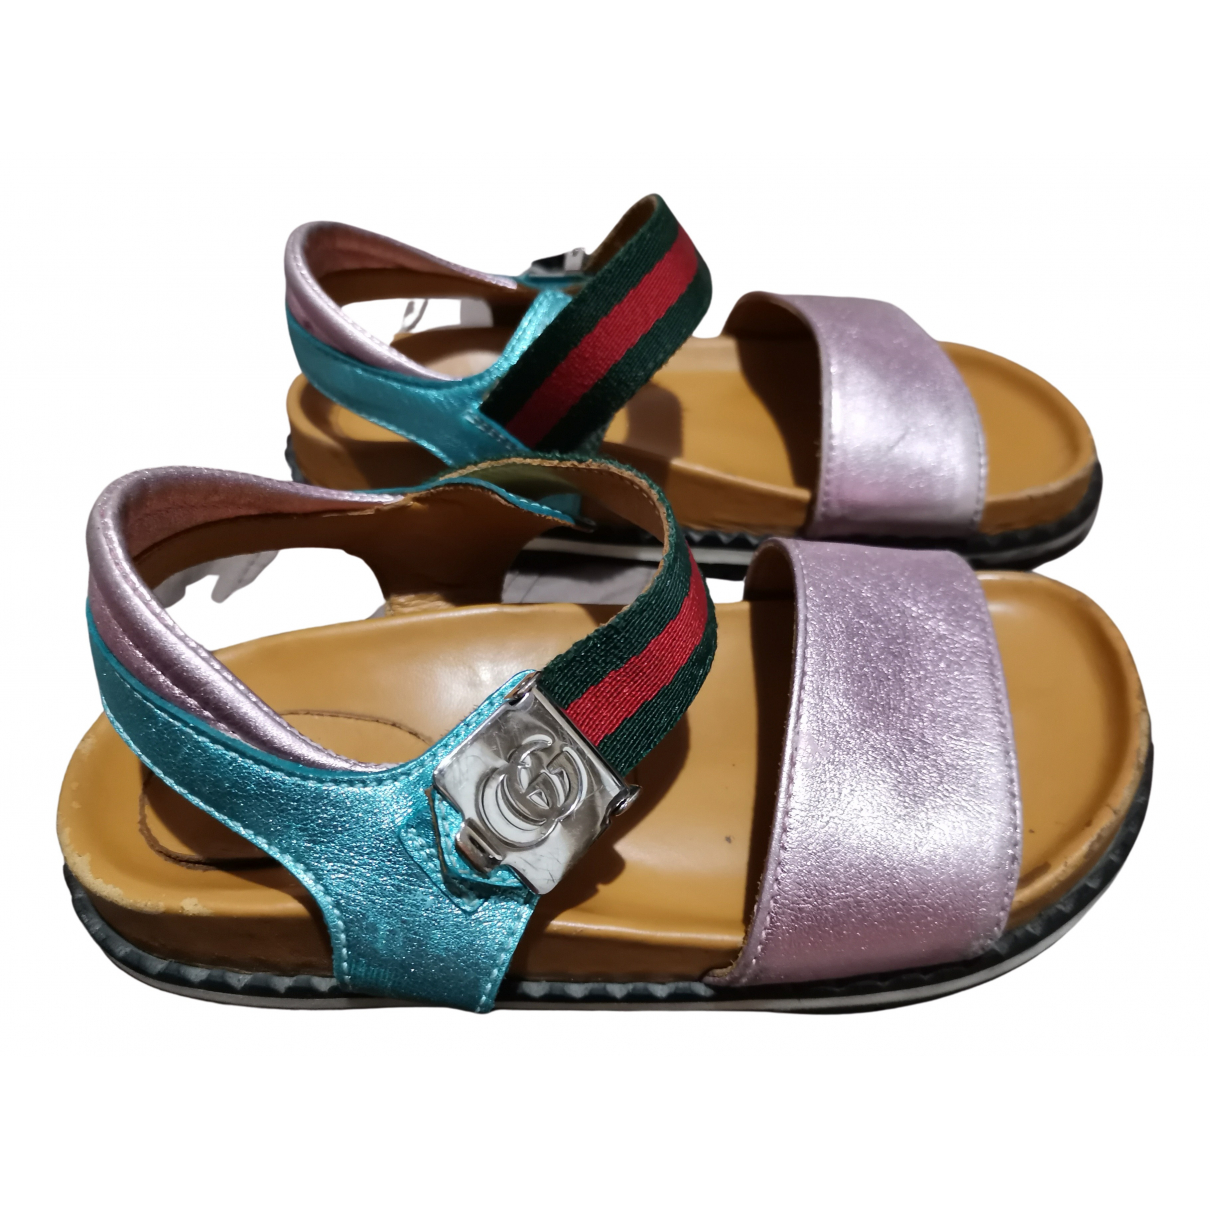 Gucci N Leather Sandals for Kids 17 FR